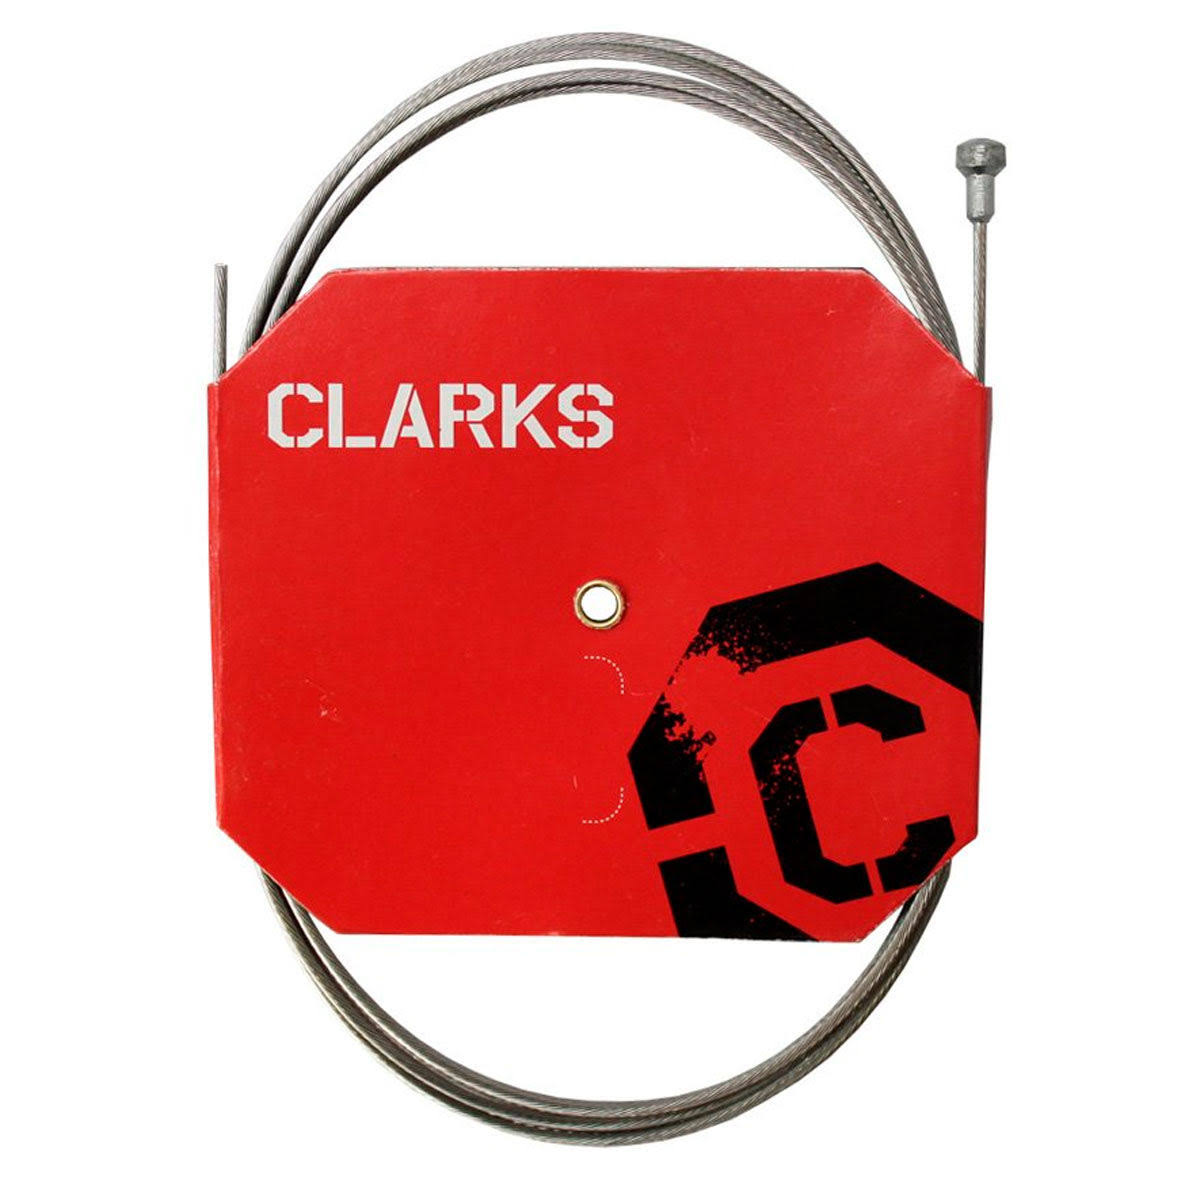 Clarks Stainless Steel Brake Cable Wire - 1.5mm x 2000mm